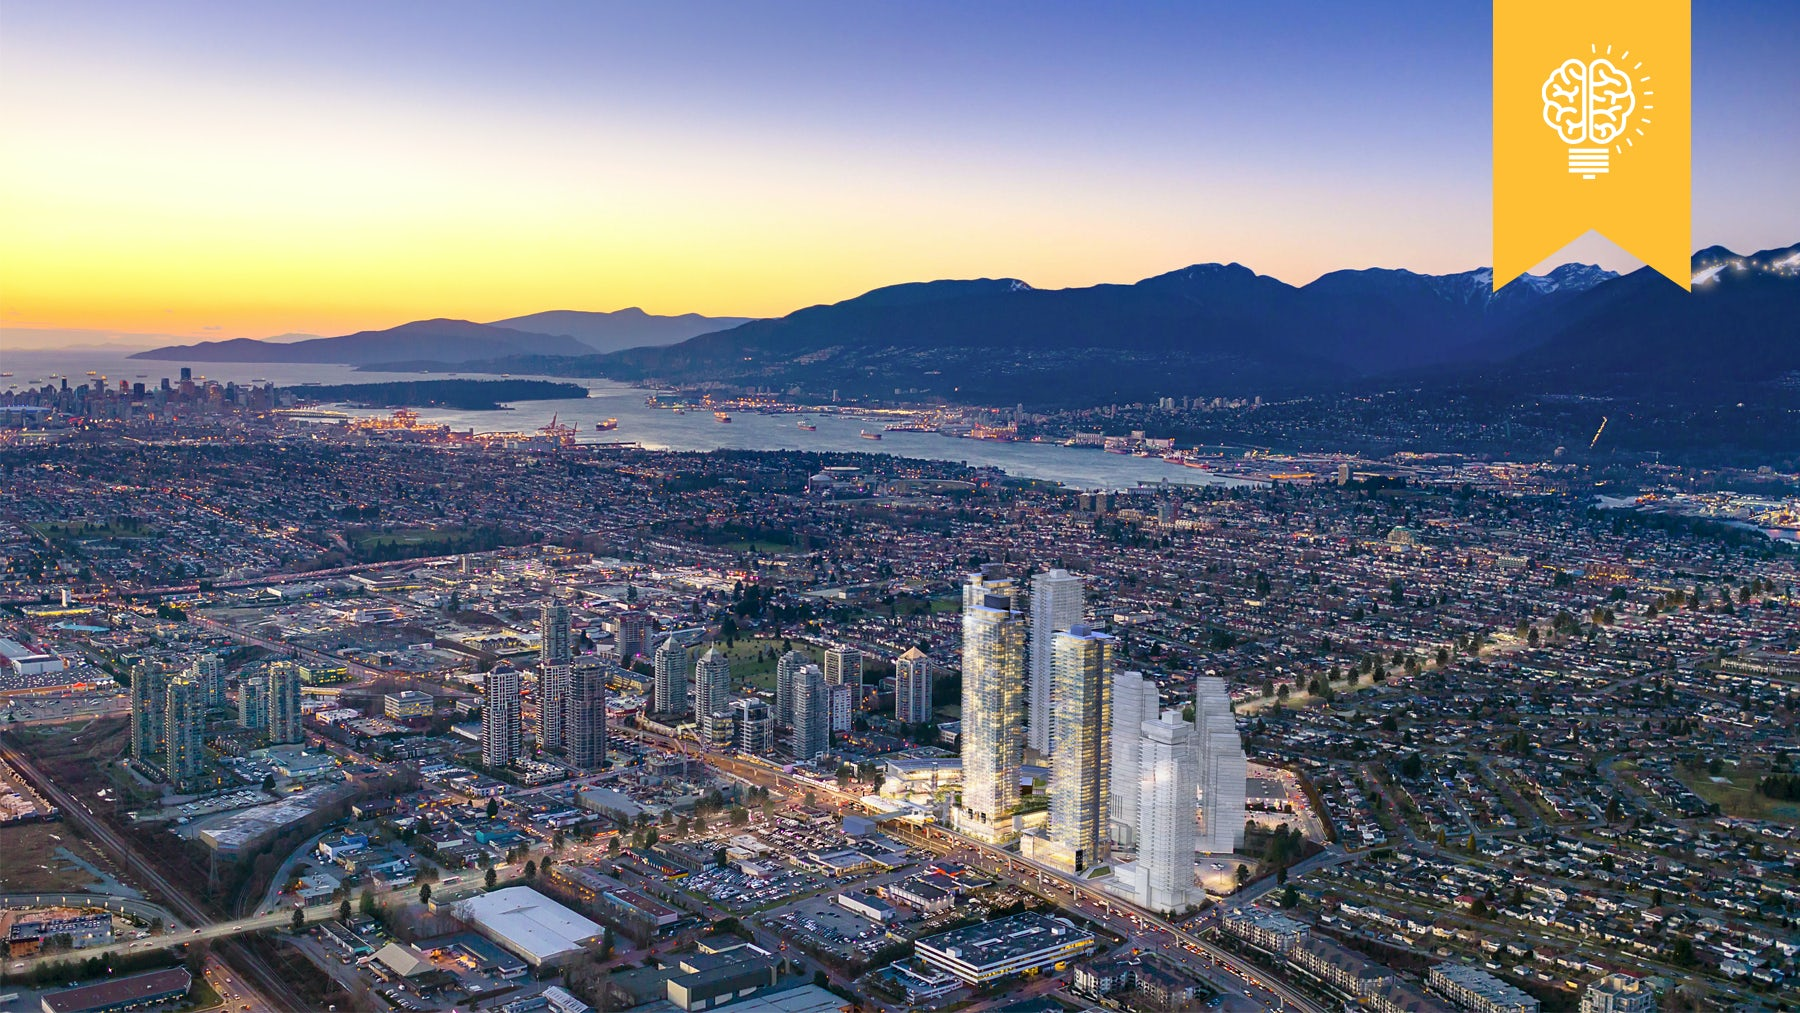 A rendering of the forthcoming The Amazing Brentwood in Vancouver | Source: Shape